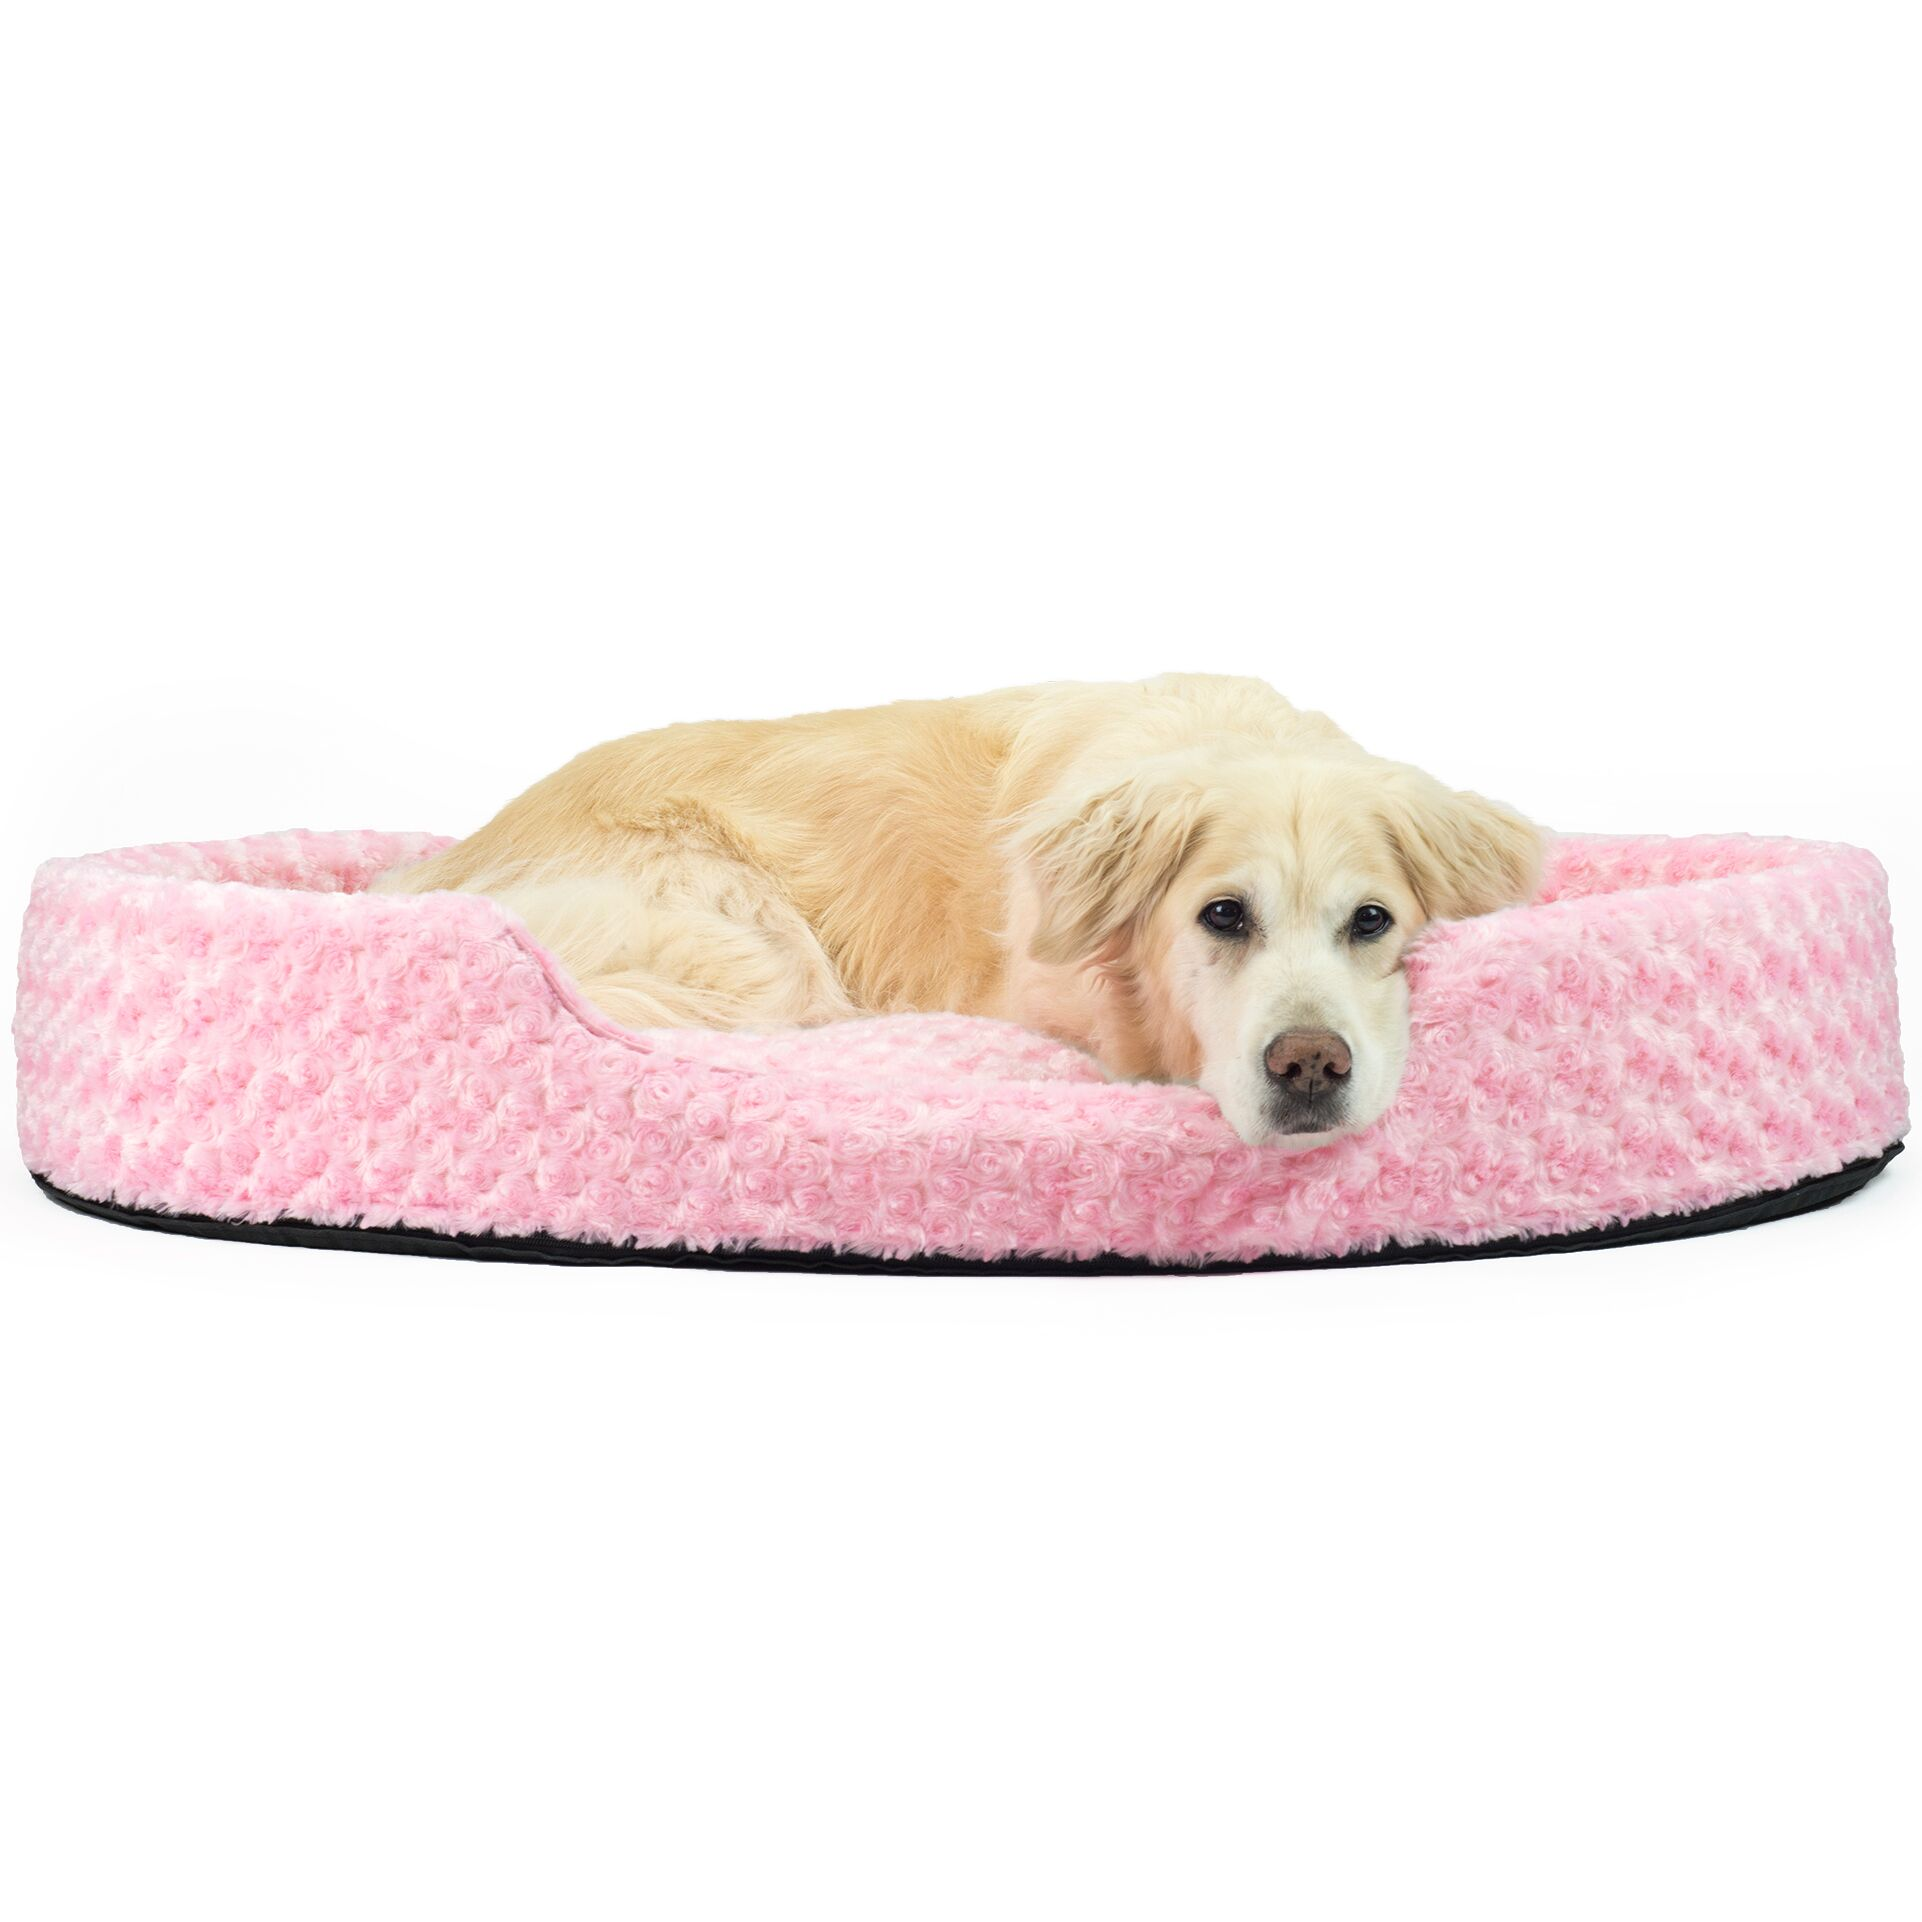 Ernie Ultra Plush Oval Pet Bed with Removable Cover Size: Jumbo (42